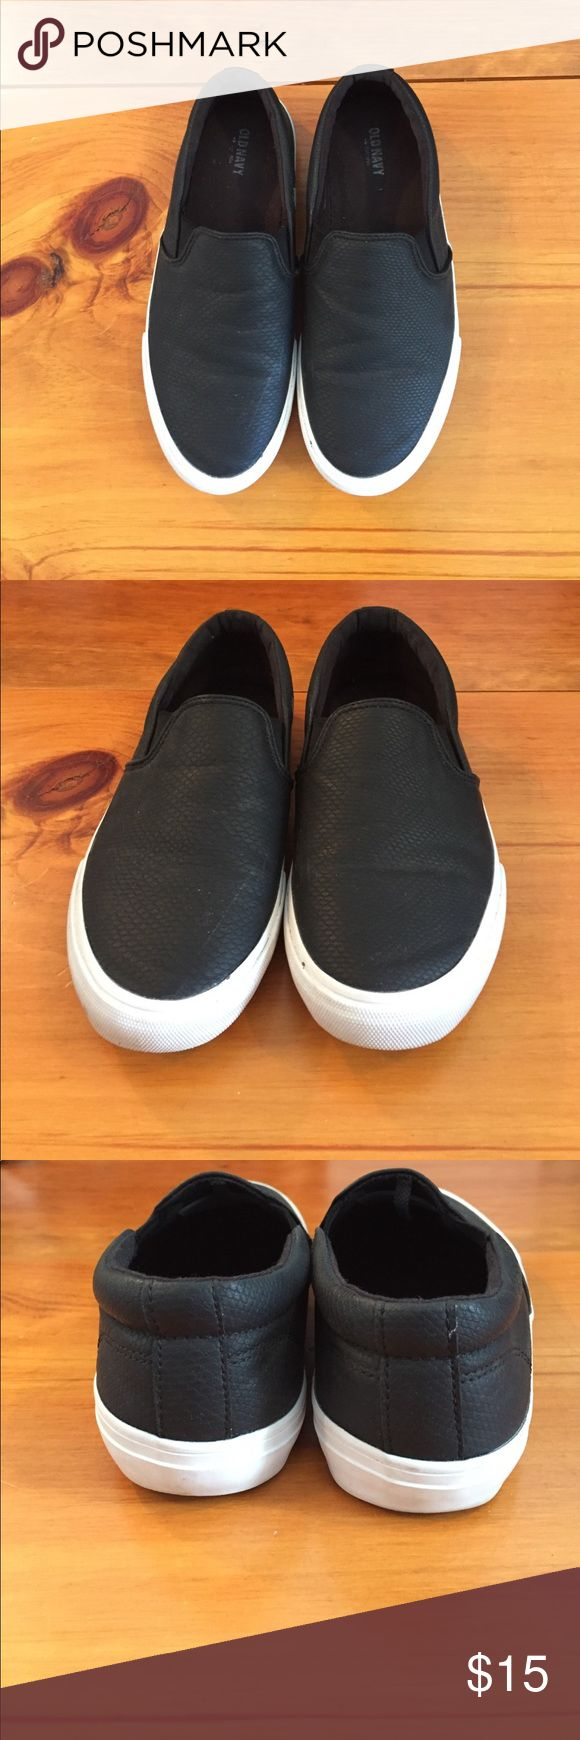 Black slip on sneakers Black slip on fashion sneakers from old navy. Excellent condition worn twice. Perfect for spring summer and fall! Old Navy Shoes Sneakers